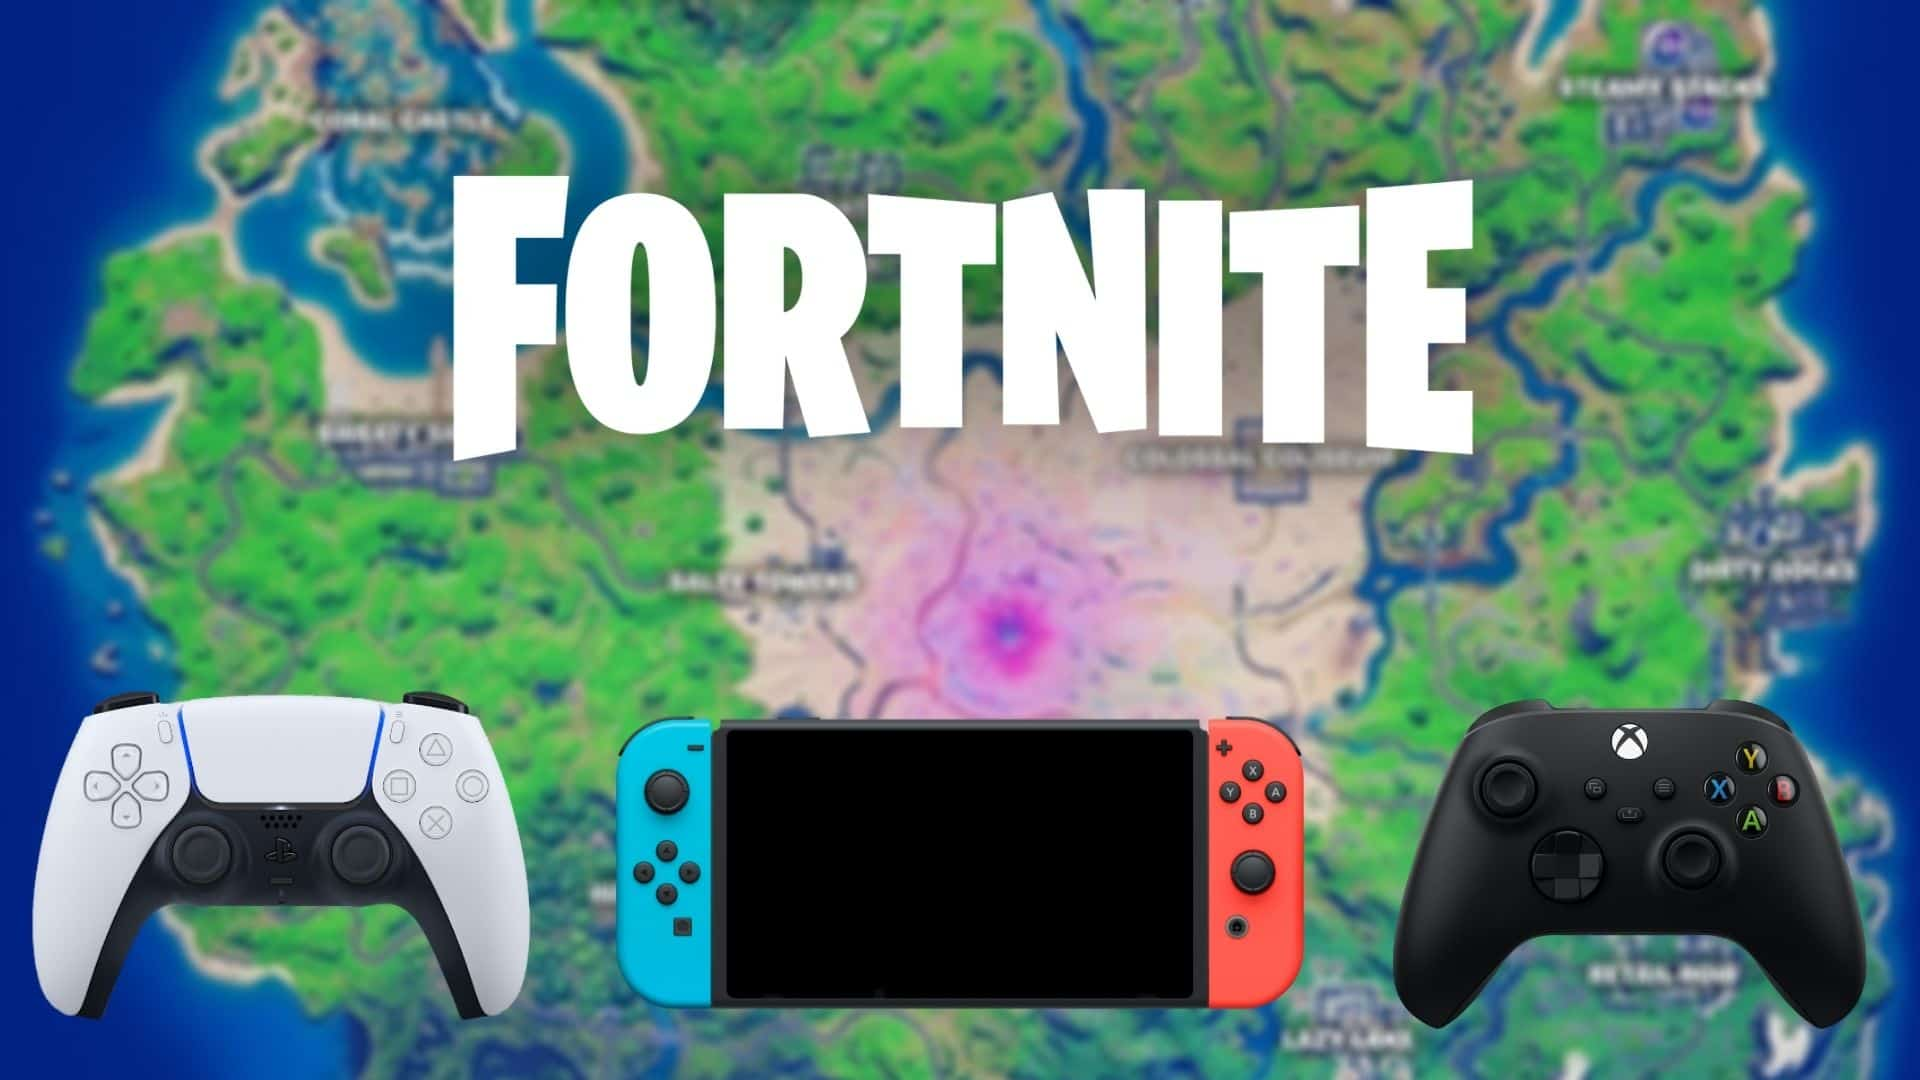 How To Play Fortnite With Other Consoles How To Merge Fortnite Accounts To Play On Playstation Xbox Switch Charlie Intel